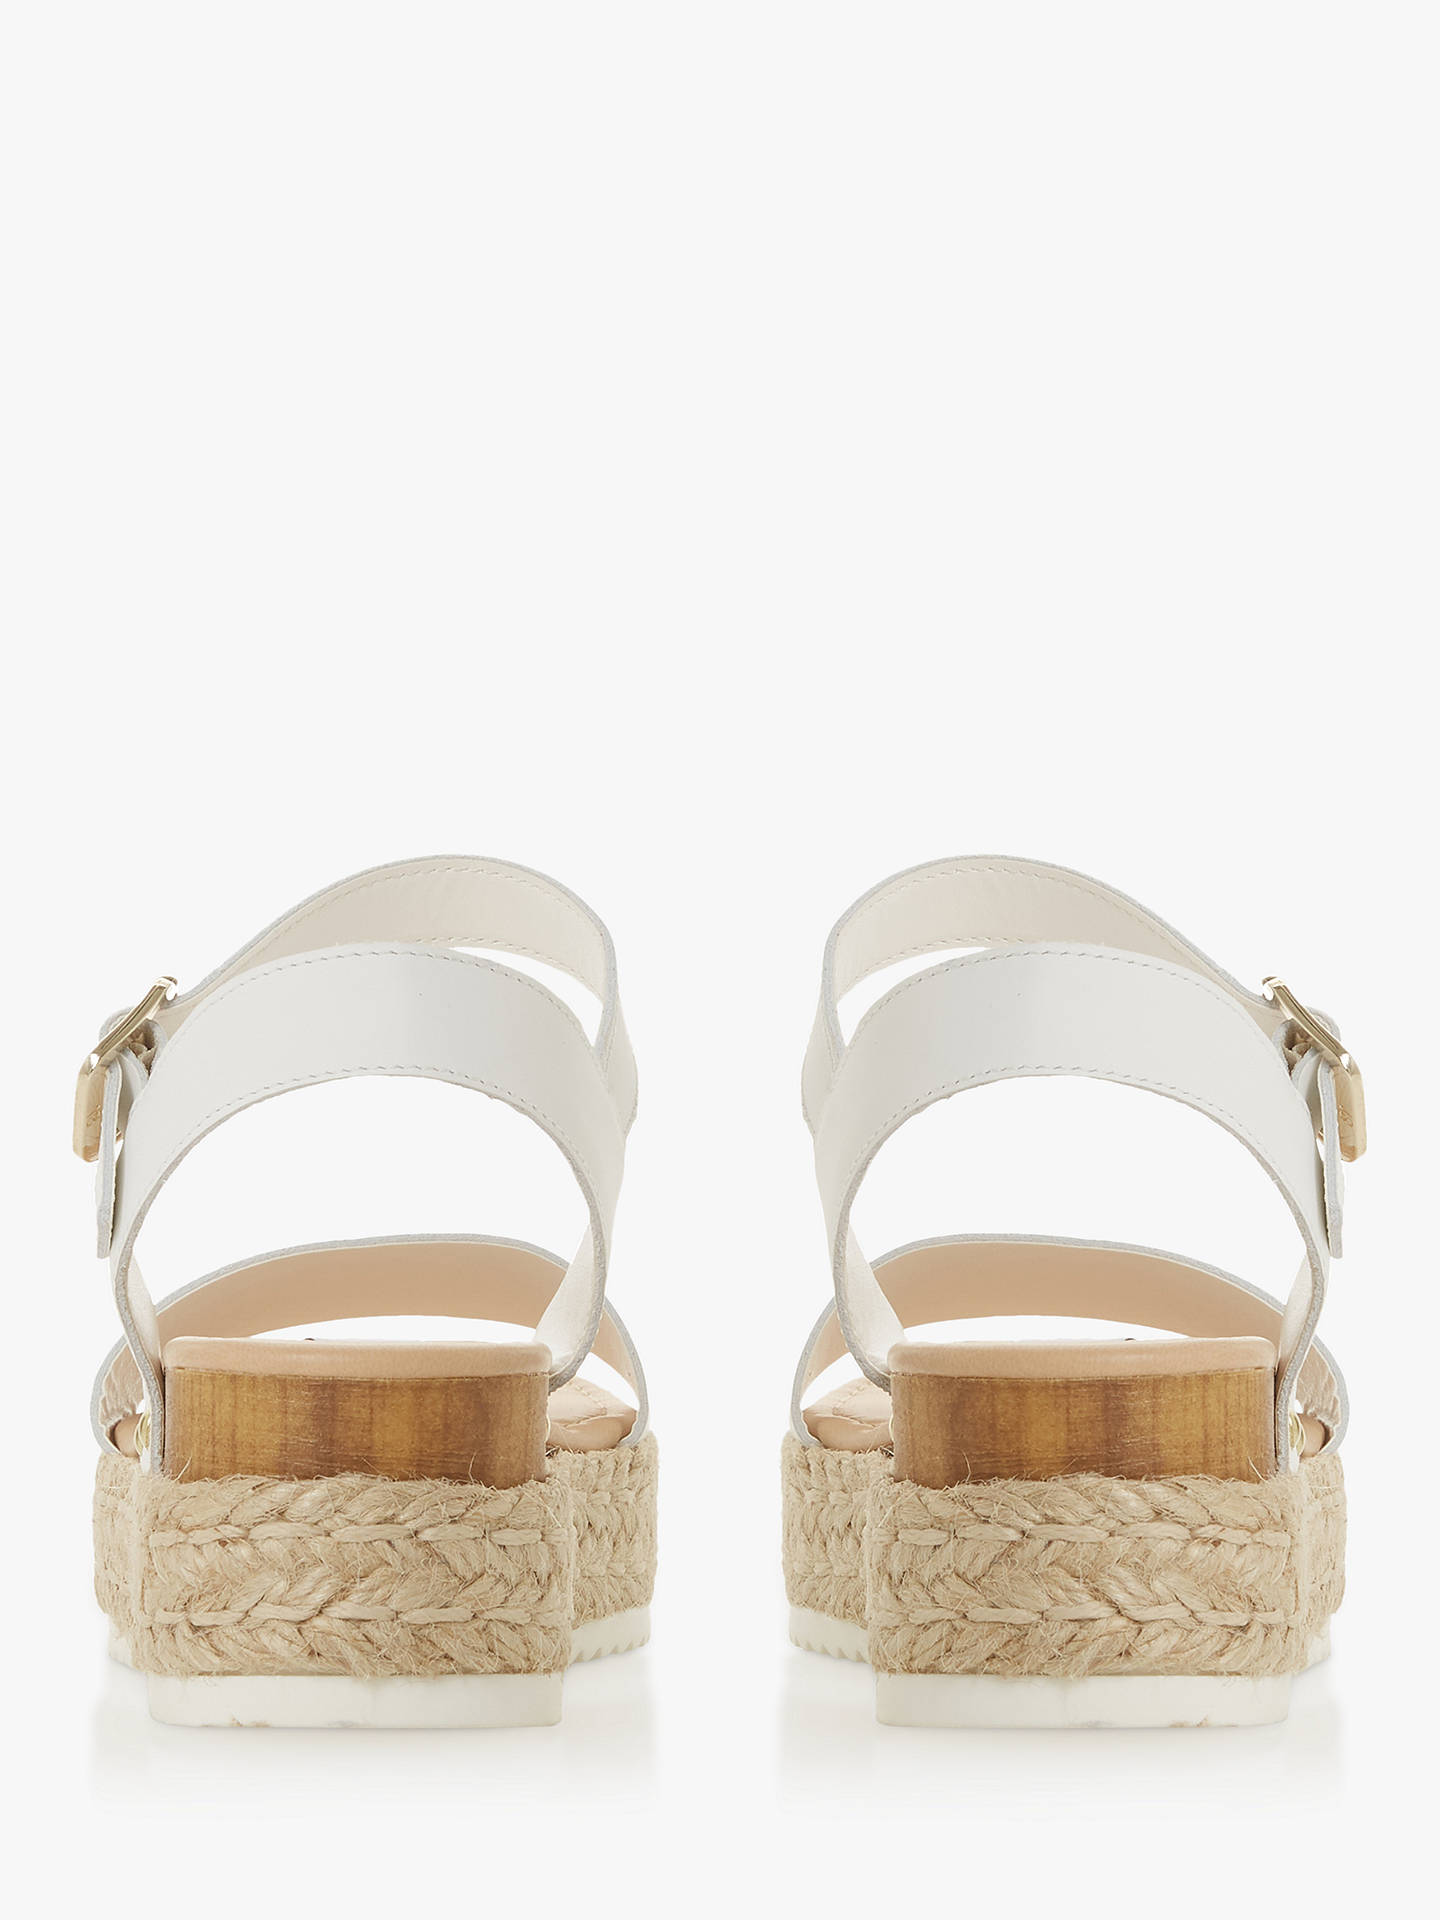 26f76d053 ... Buy Steve Madden Chiara Sandals, White Leather, 3 Online at  johnlewis.com